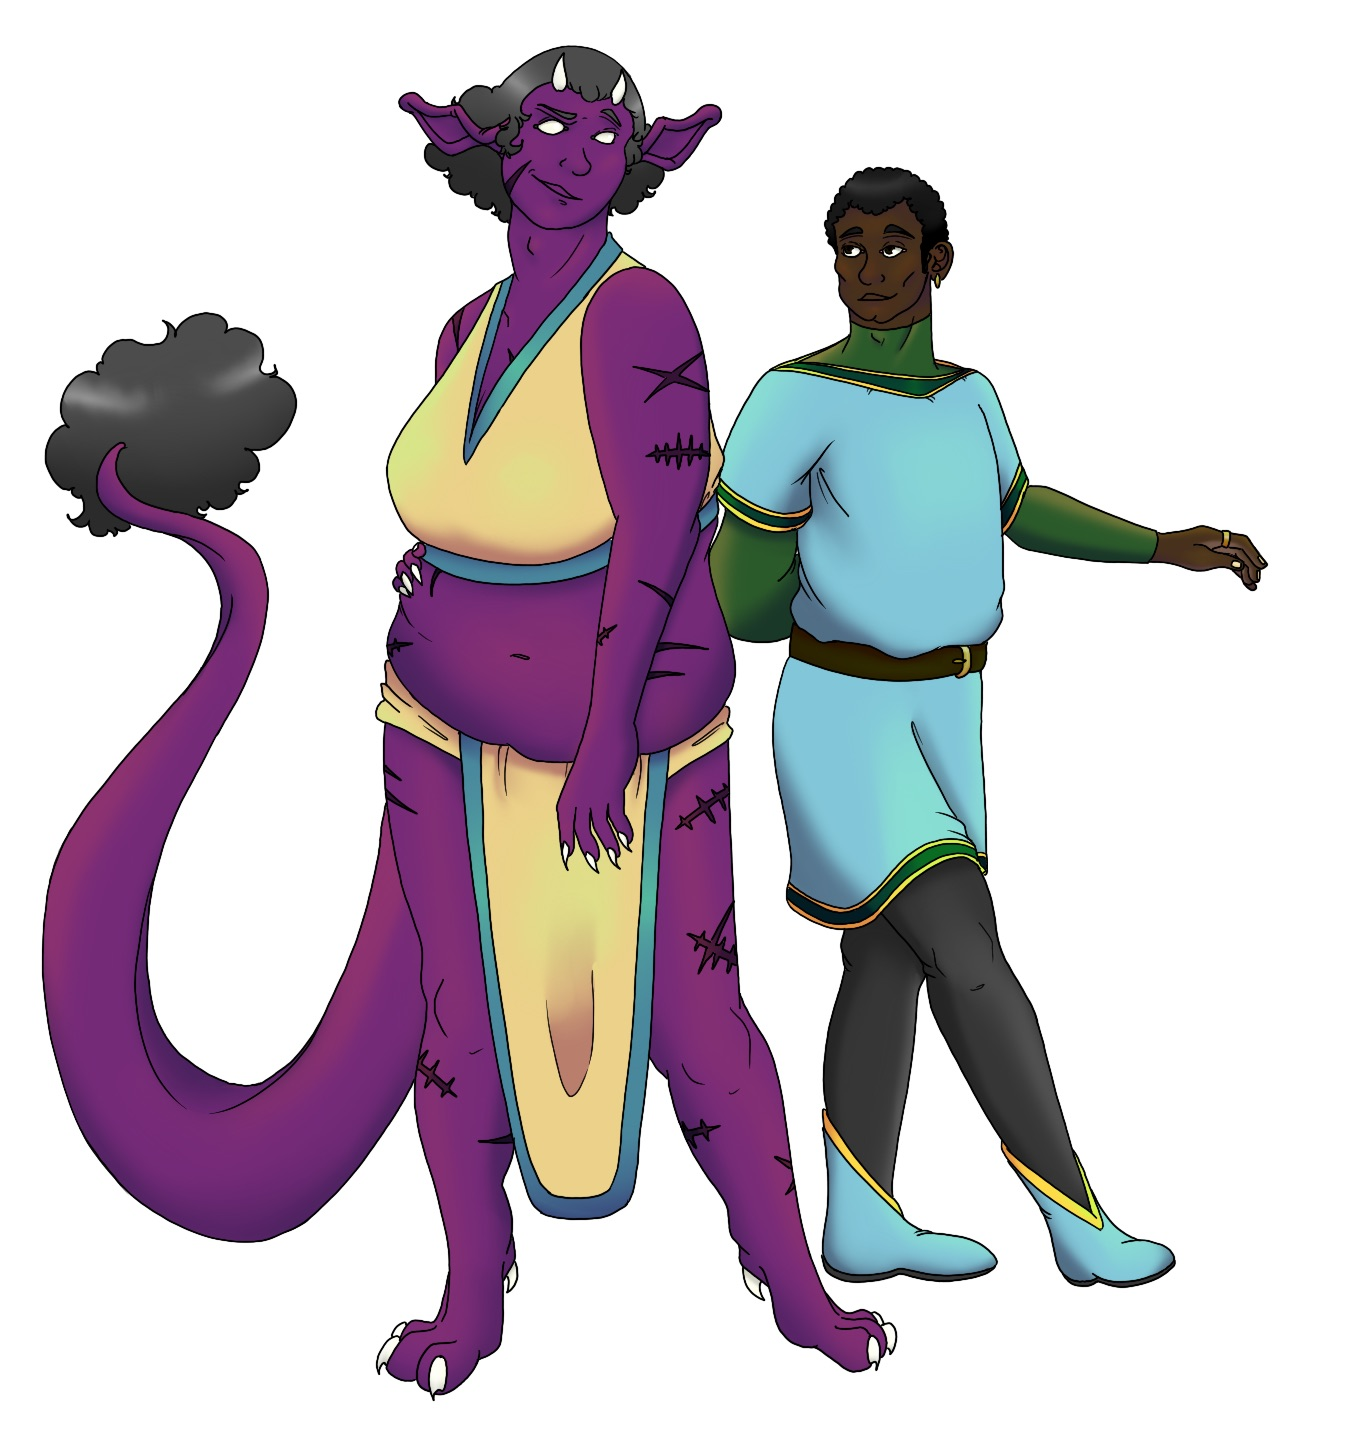 An illustration of a purple-skinned devil-like woman looking in amusement at a Black man in medieval